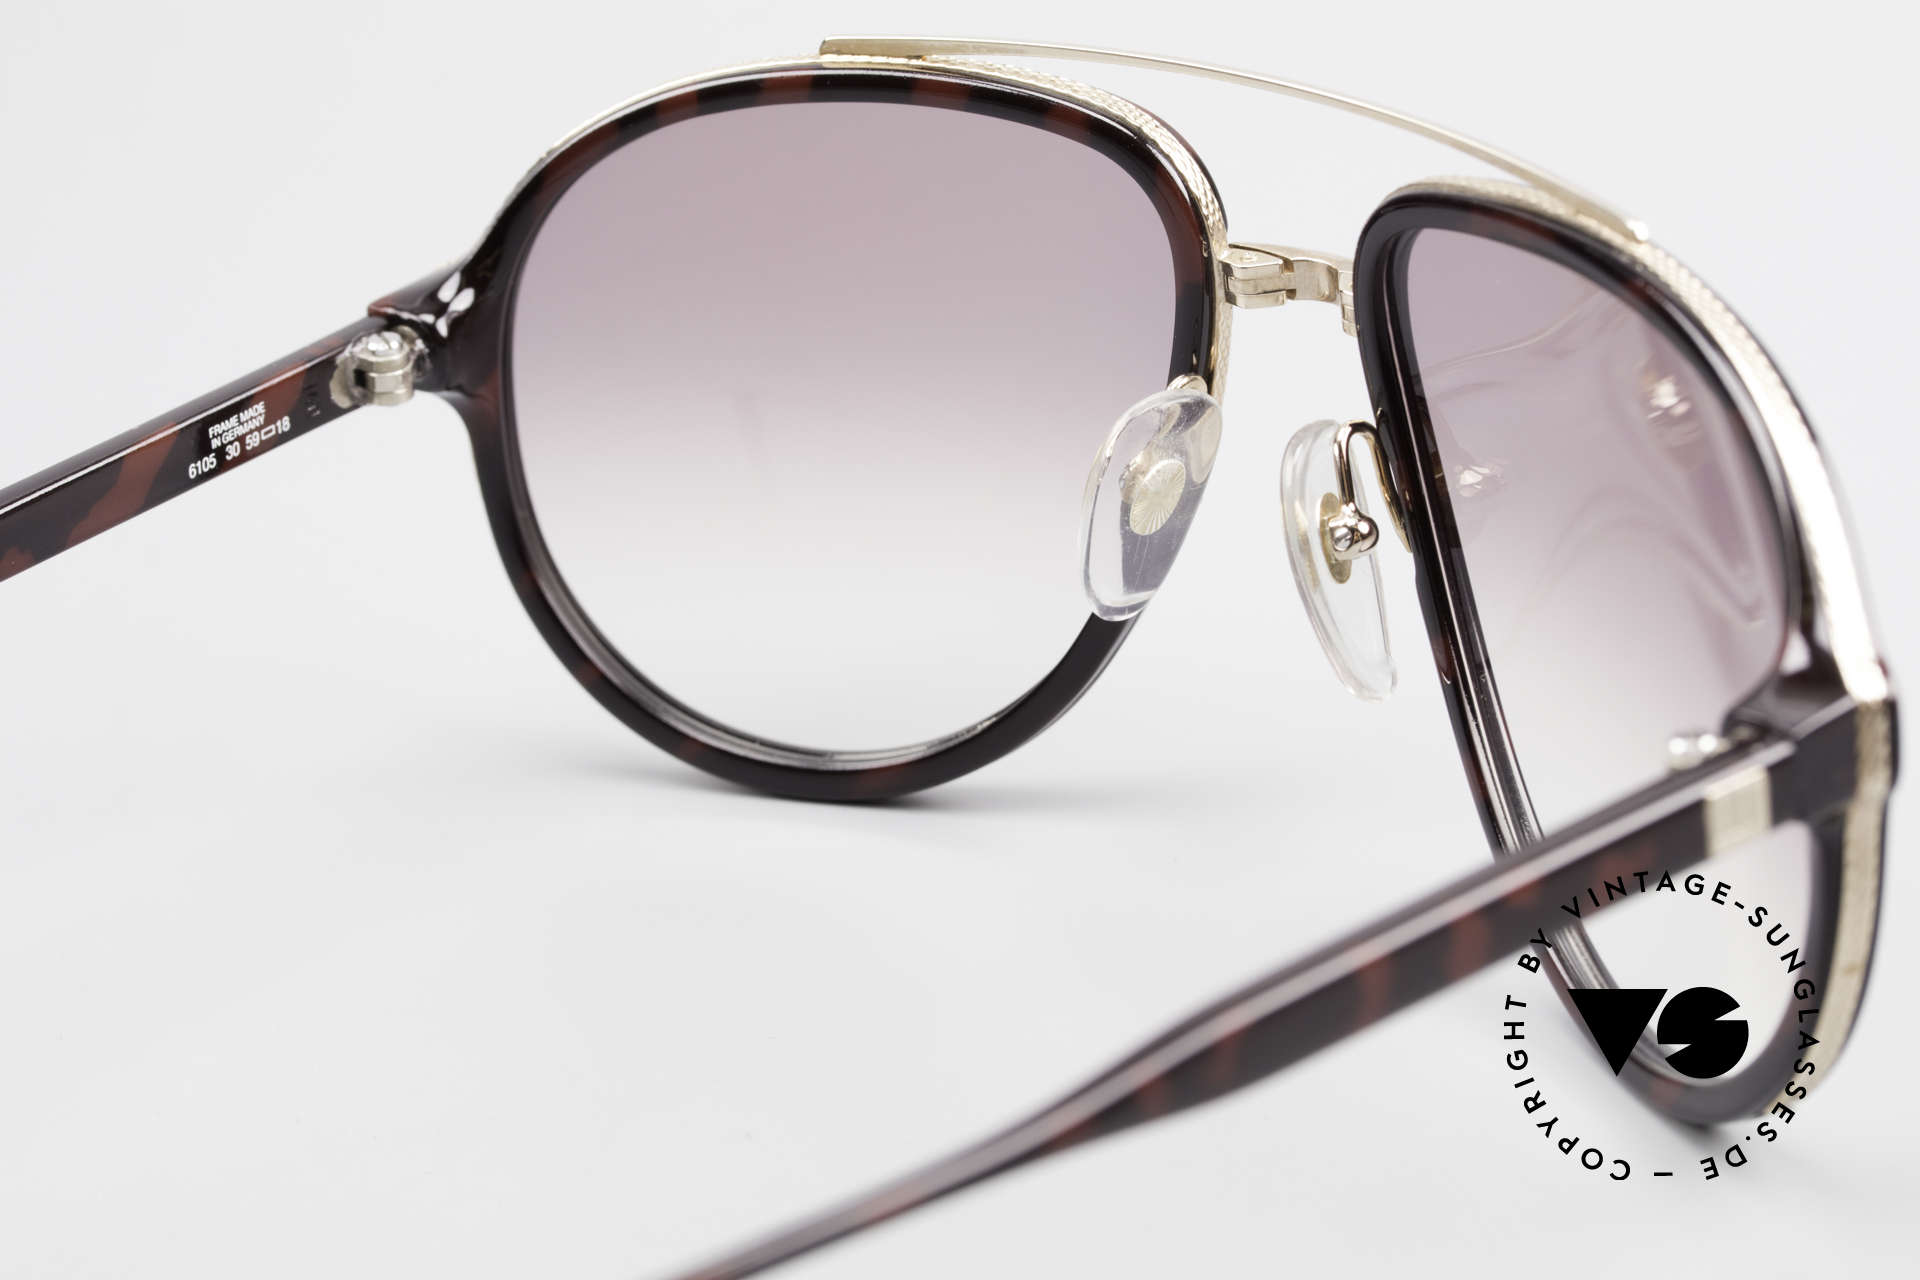 Dunhill 6105 Comfort Fit Luxury Sunglasses, NO RETRO, but a precious 30 years old ORIGINAL, Made for Men